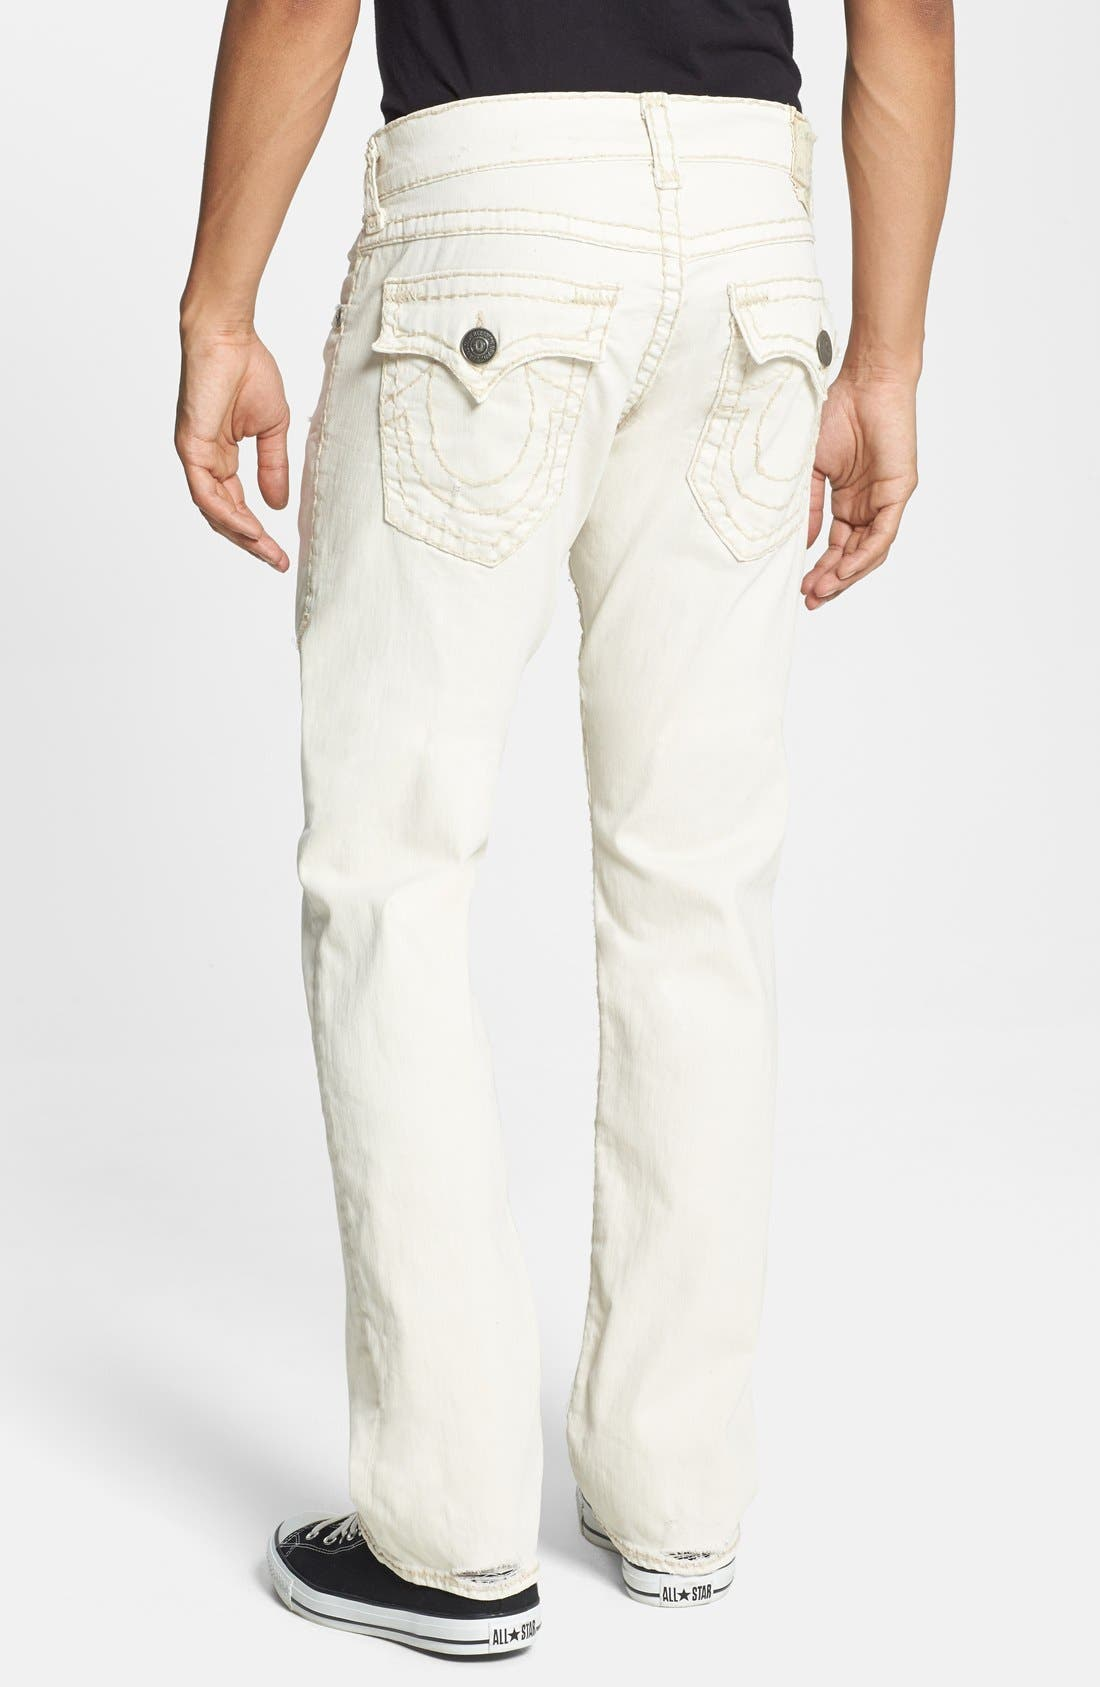 Alternate Image 1 Selected - True Religion Brand Jeans 'Ricky' Relaxed Fit Jeans (Bak Joshua Tree)